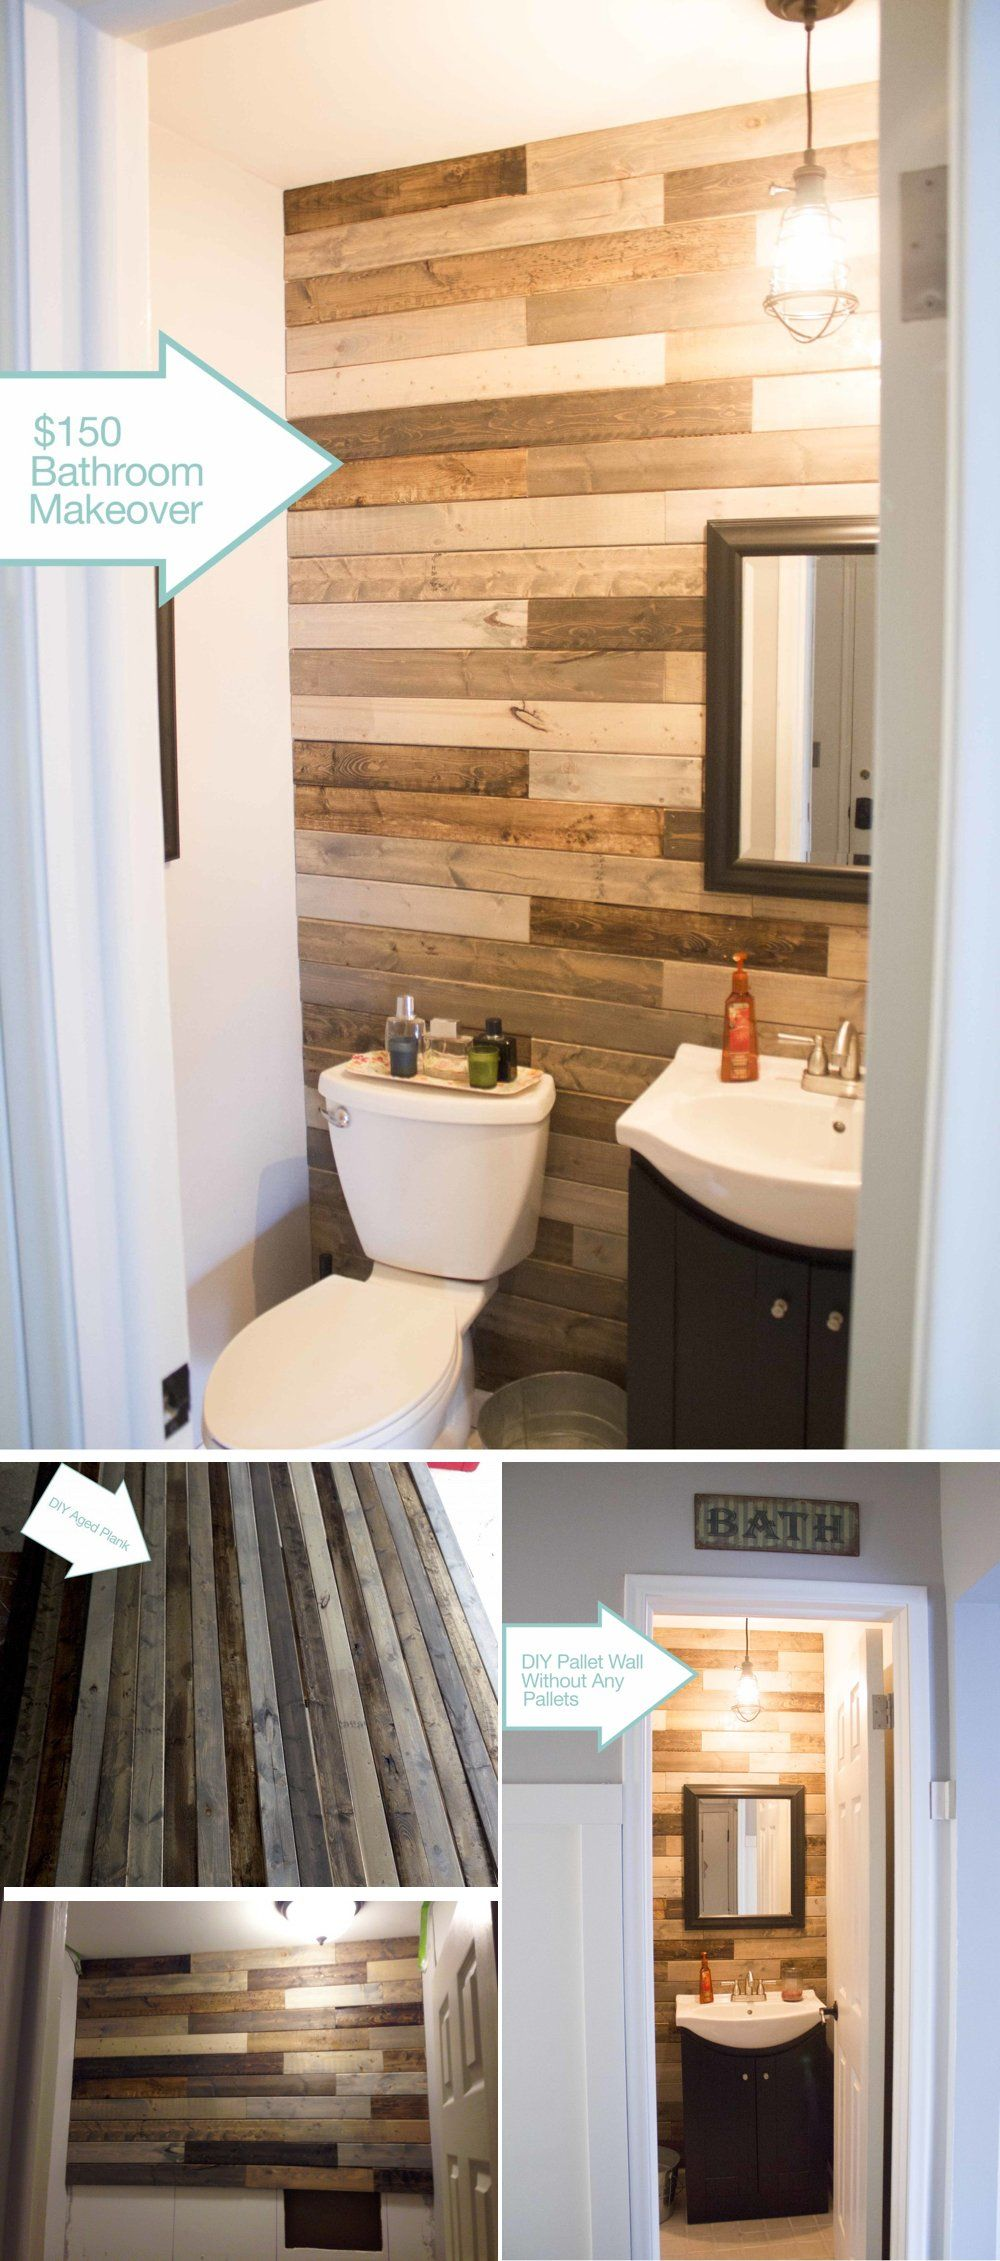 Paneling For Bathroom 15 Beautiful Wood Accent Wall Ideas To Upgrade Your Space Pallet